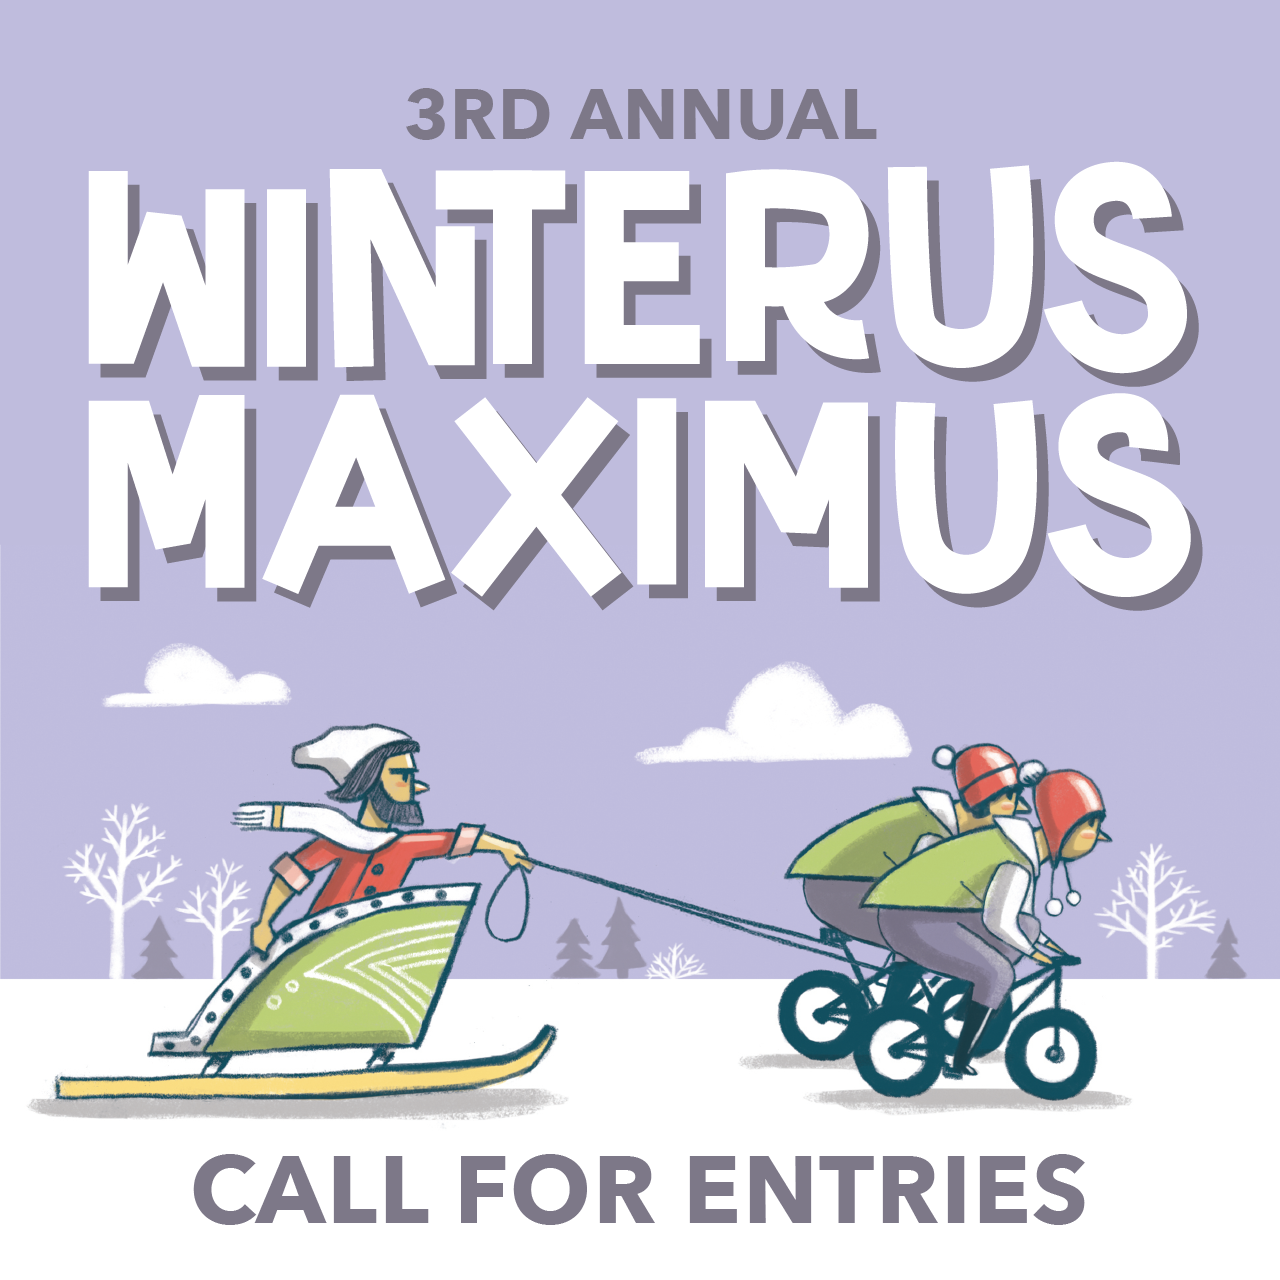 Winterus Maximus Returns! - As part of the Flying Canoë Volant Festival, We're hosting the 3rd annual Winterus Maximus! Find out more and register your team here.